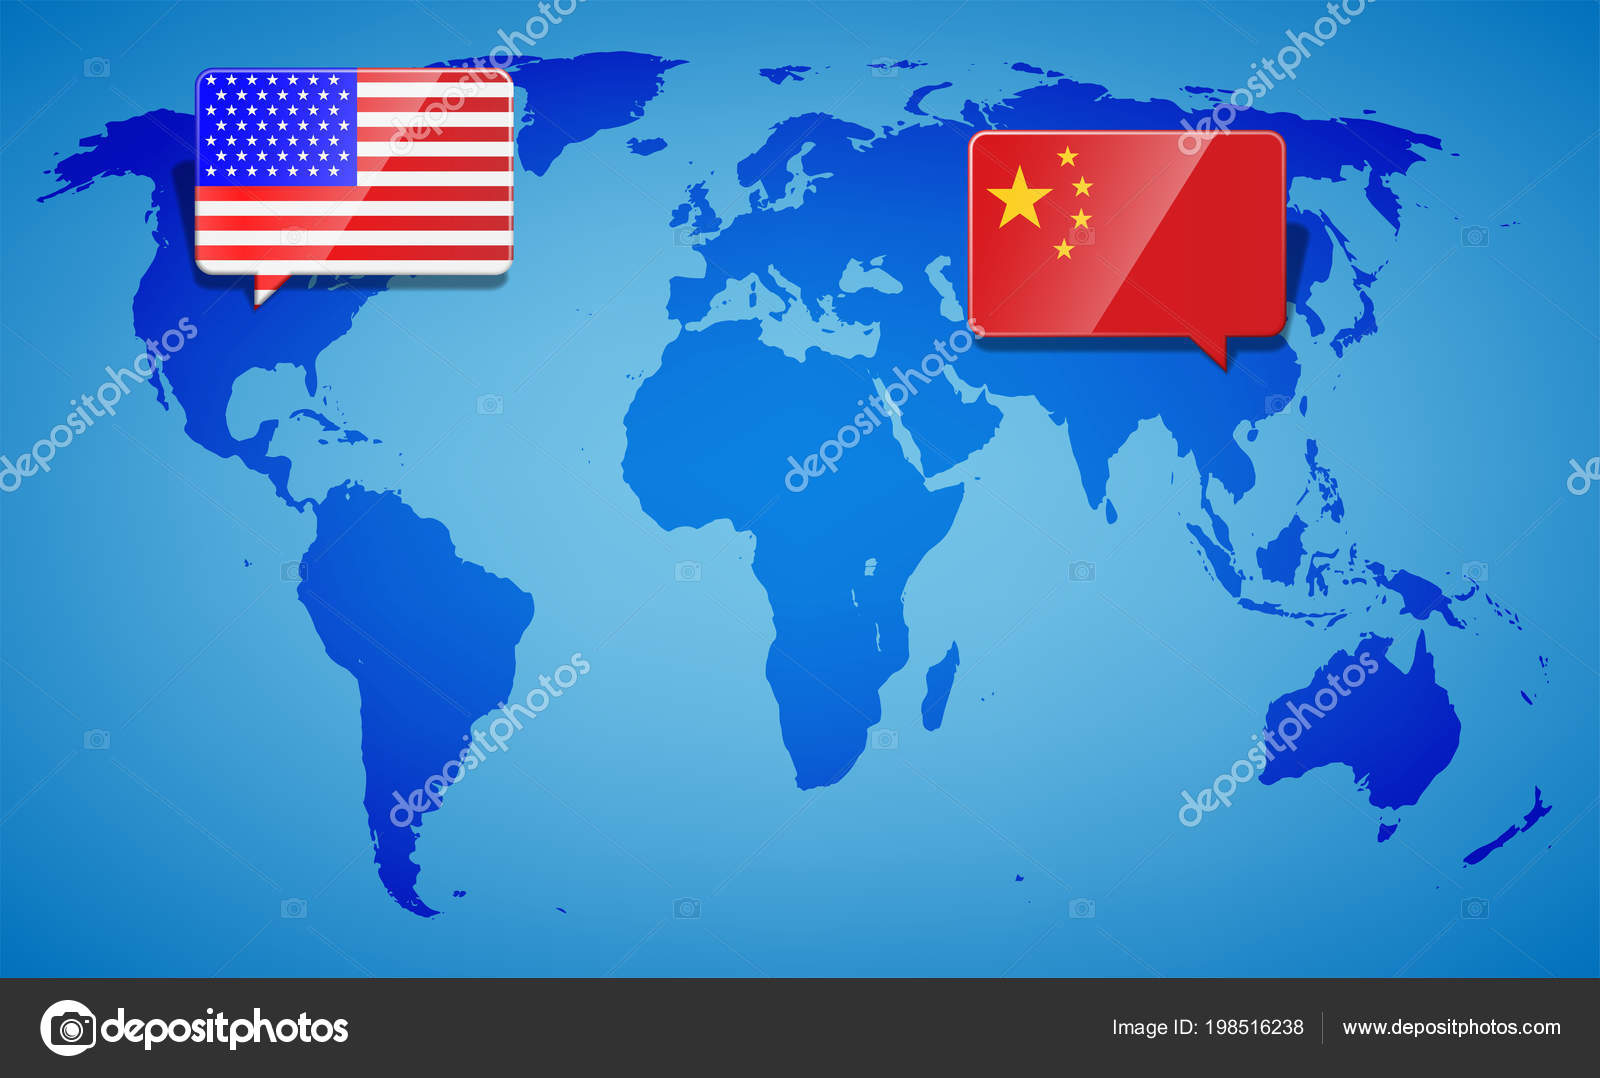 Usa and china at the blue world map background trade war with usa and china at the blue world map background trade war with america and china gumiabroncs Images